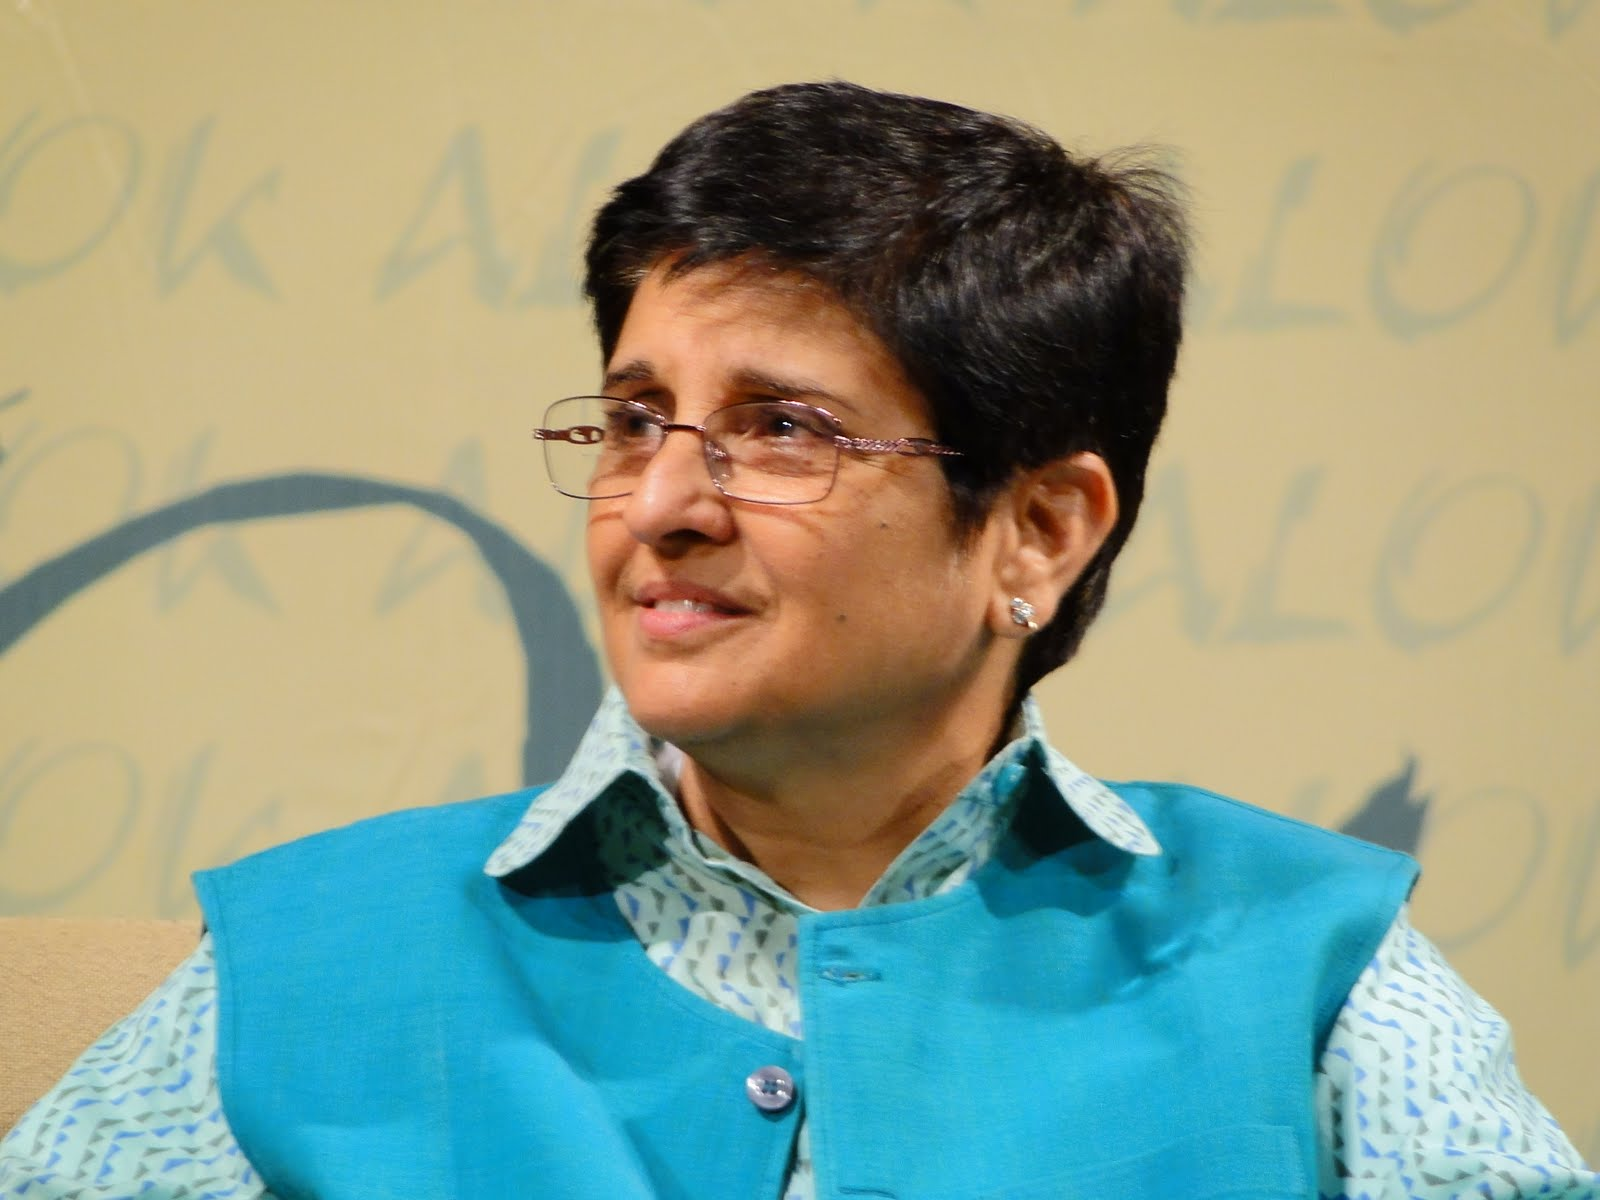 Kiran Bedi Picture By: Can India